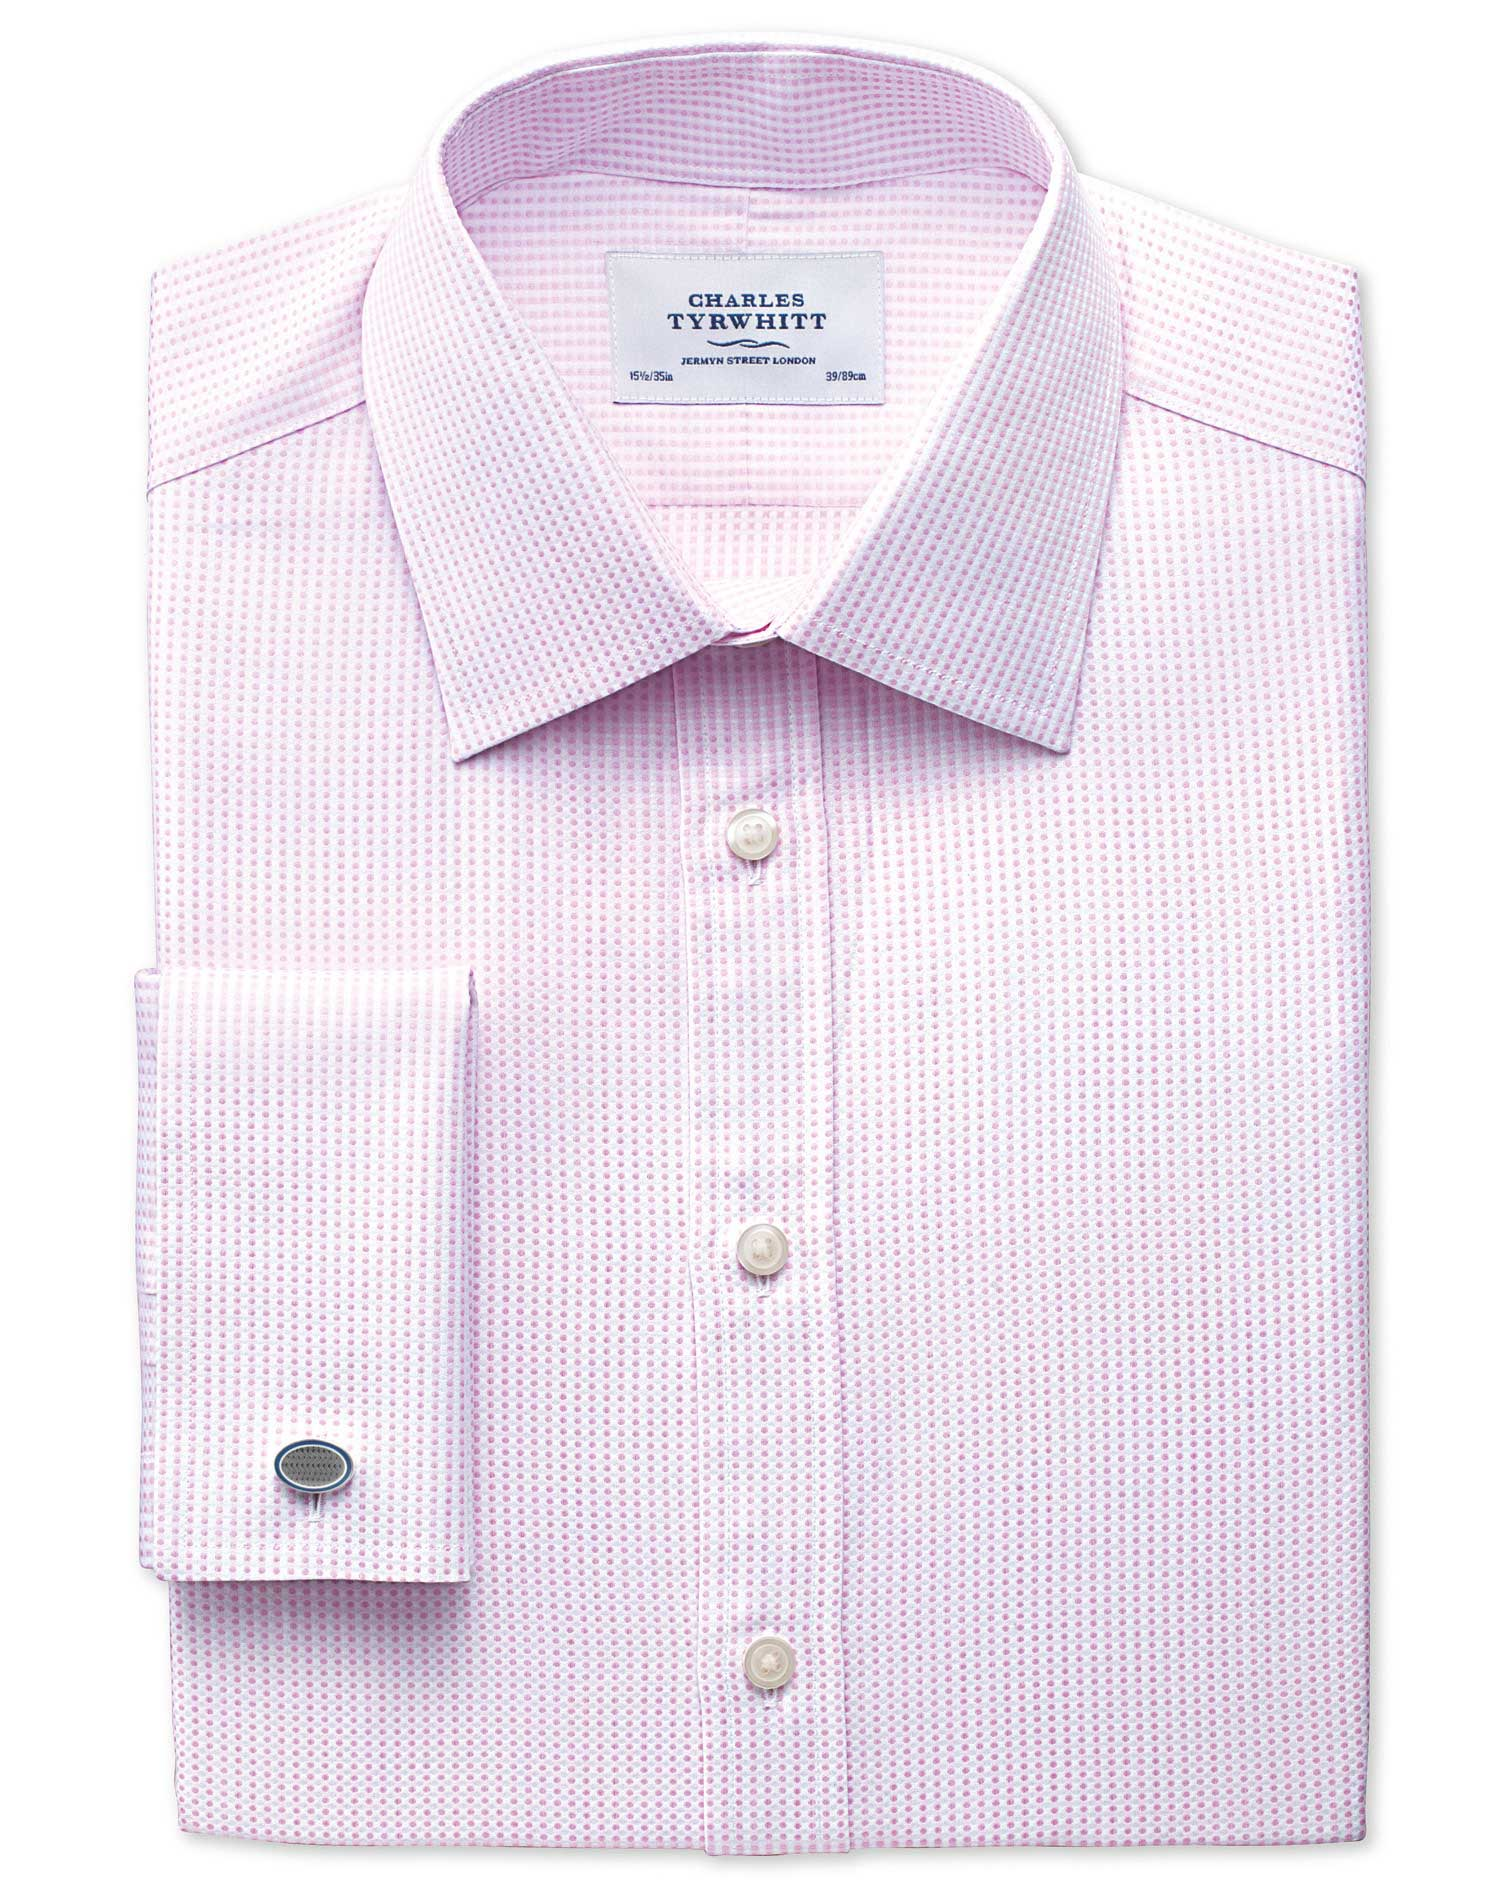 Classic Fit Pima Cotton Double-Faced Light Pink Formal Shirt Double Cuff Size 16/38 by Charles Tyrwh